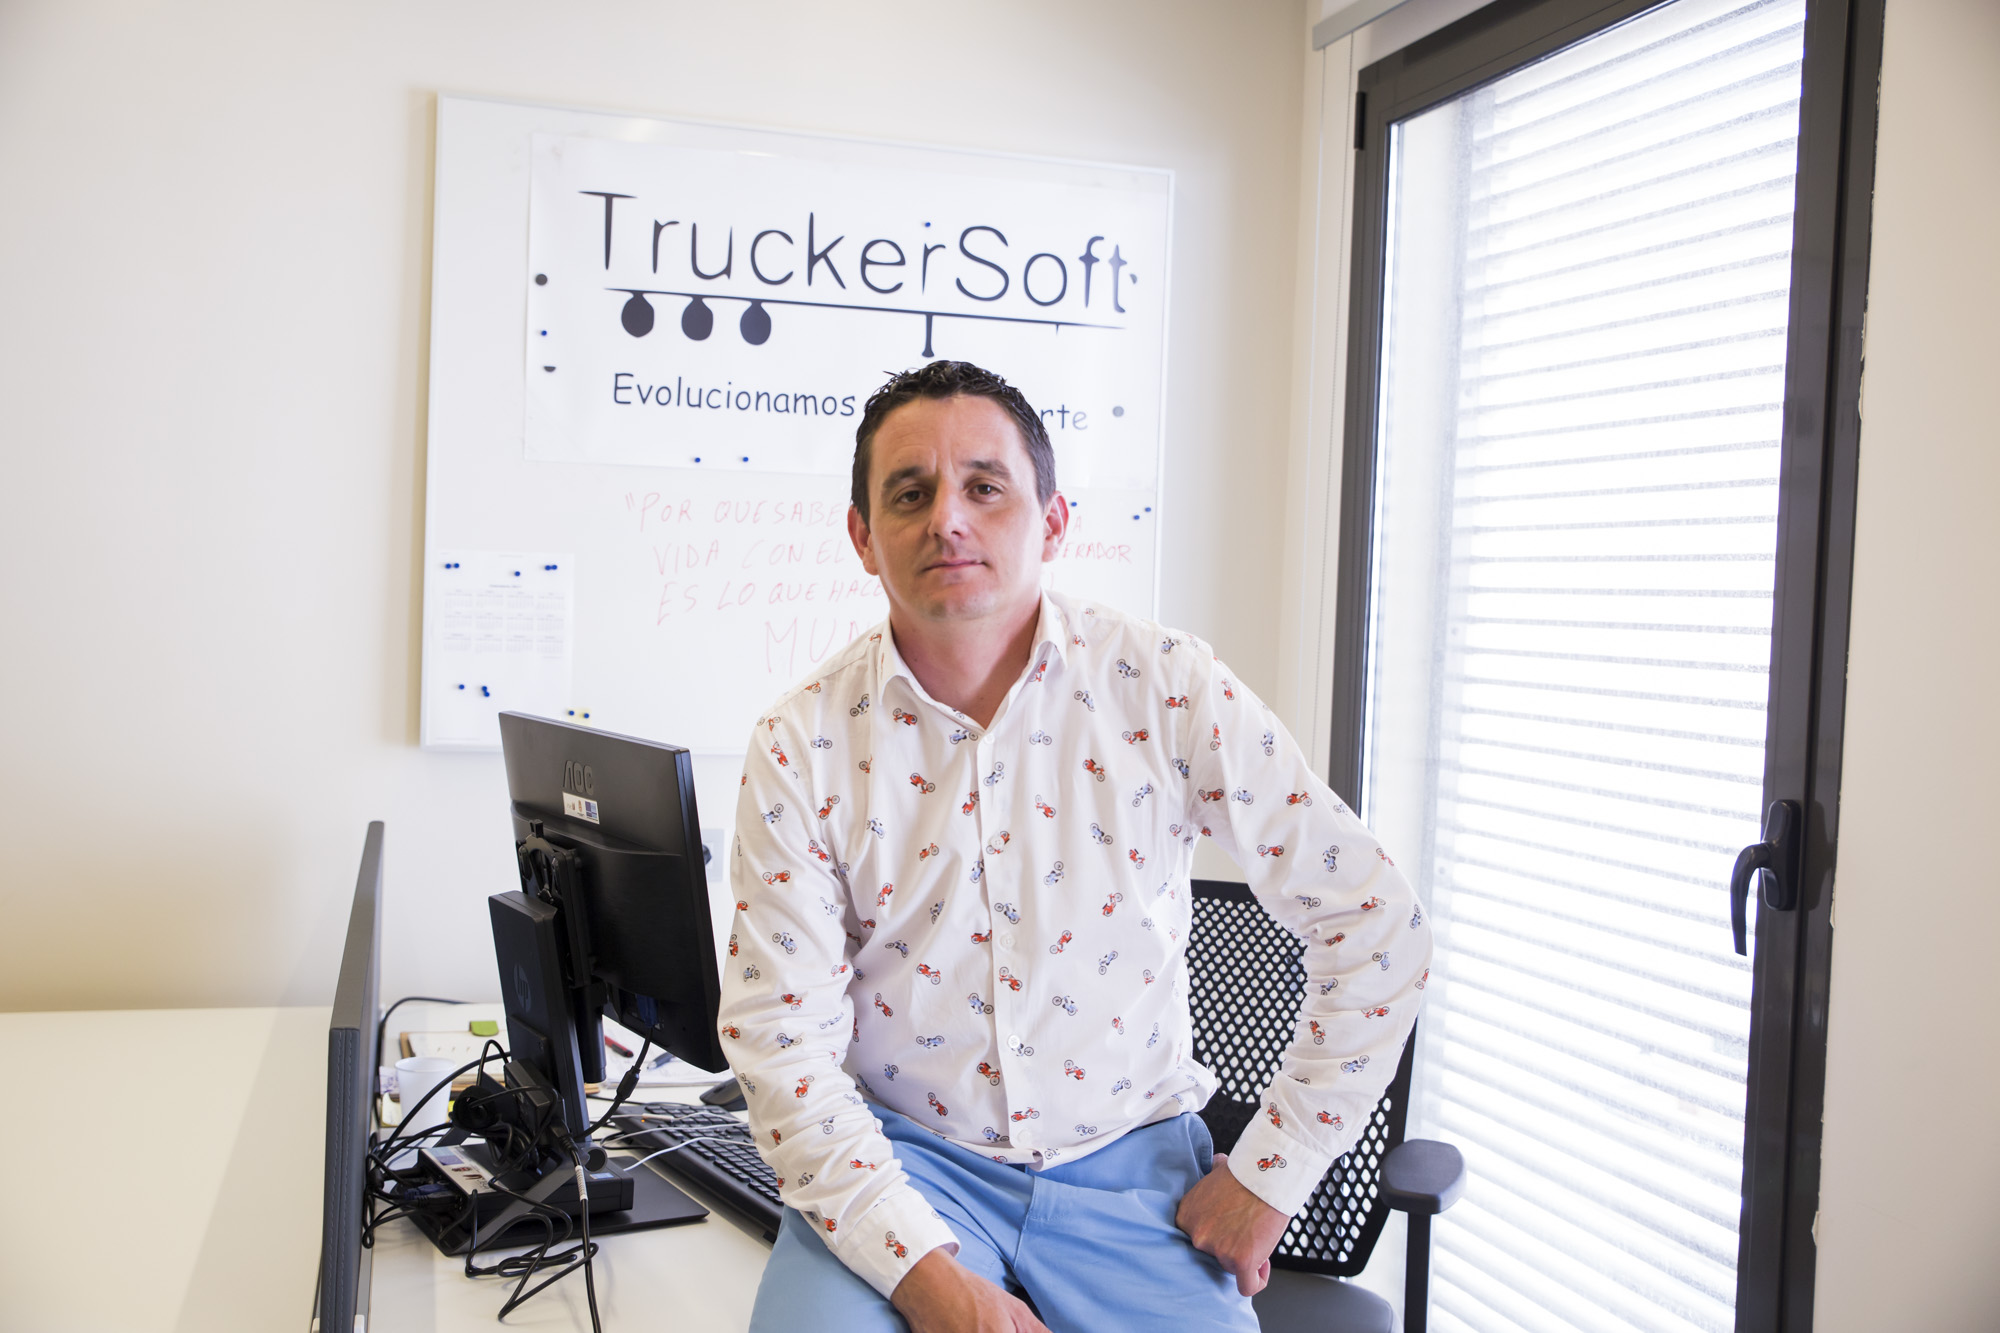 TruckerSoft